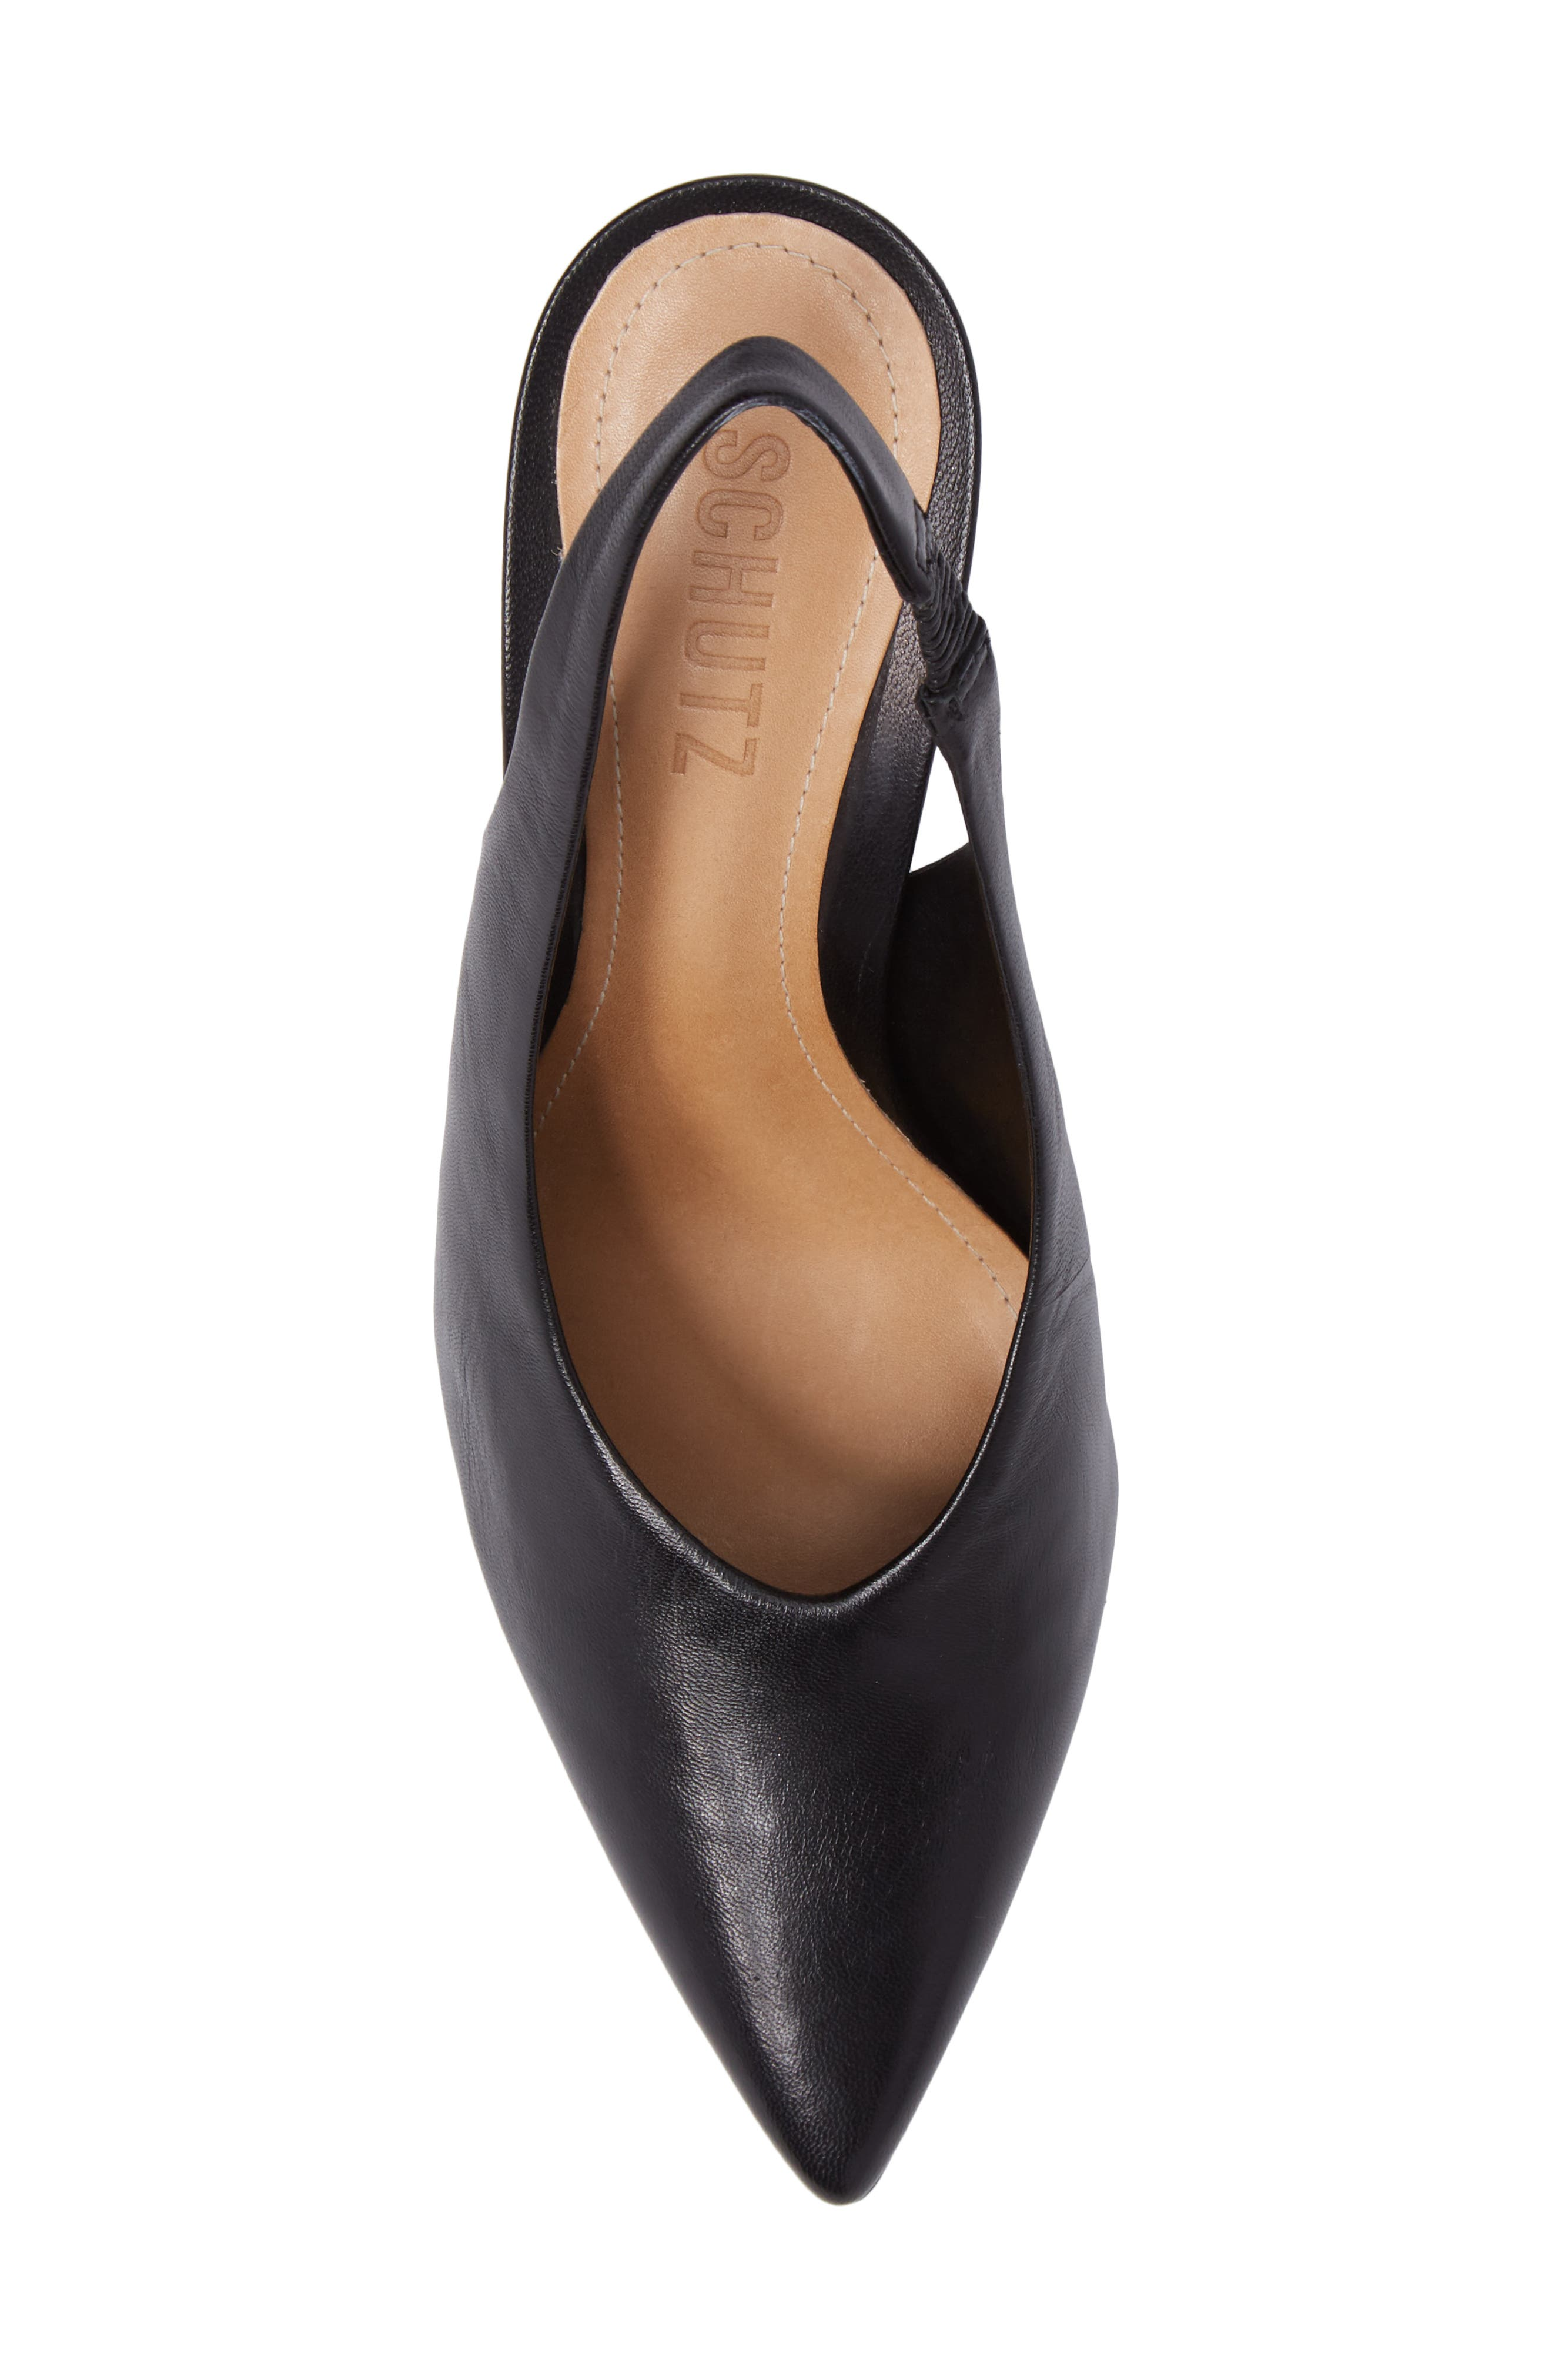 Phisalis Slingback Pump,                             Alternate thumbnail 5, color,                             Black Mestico Leather